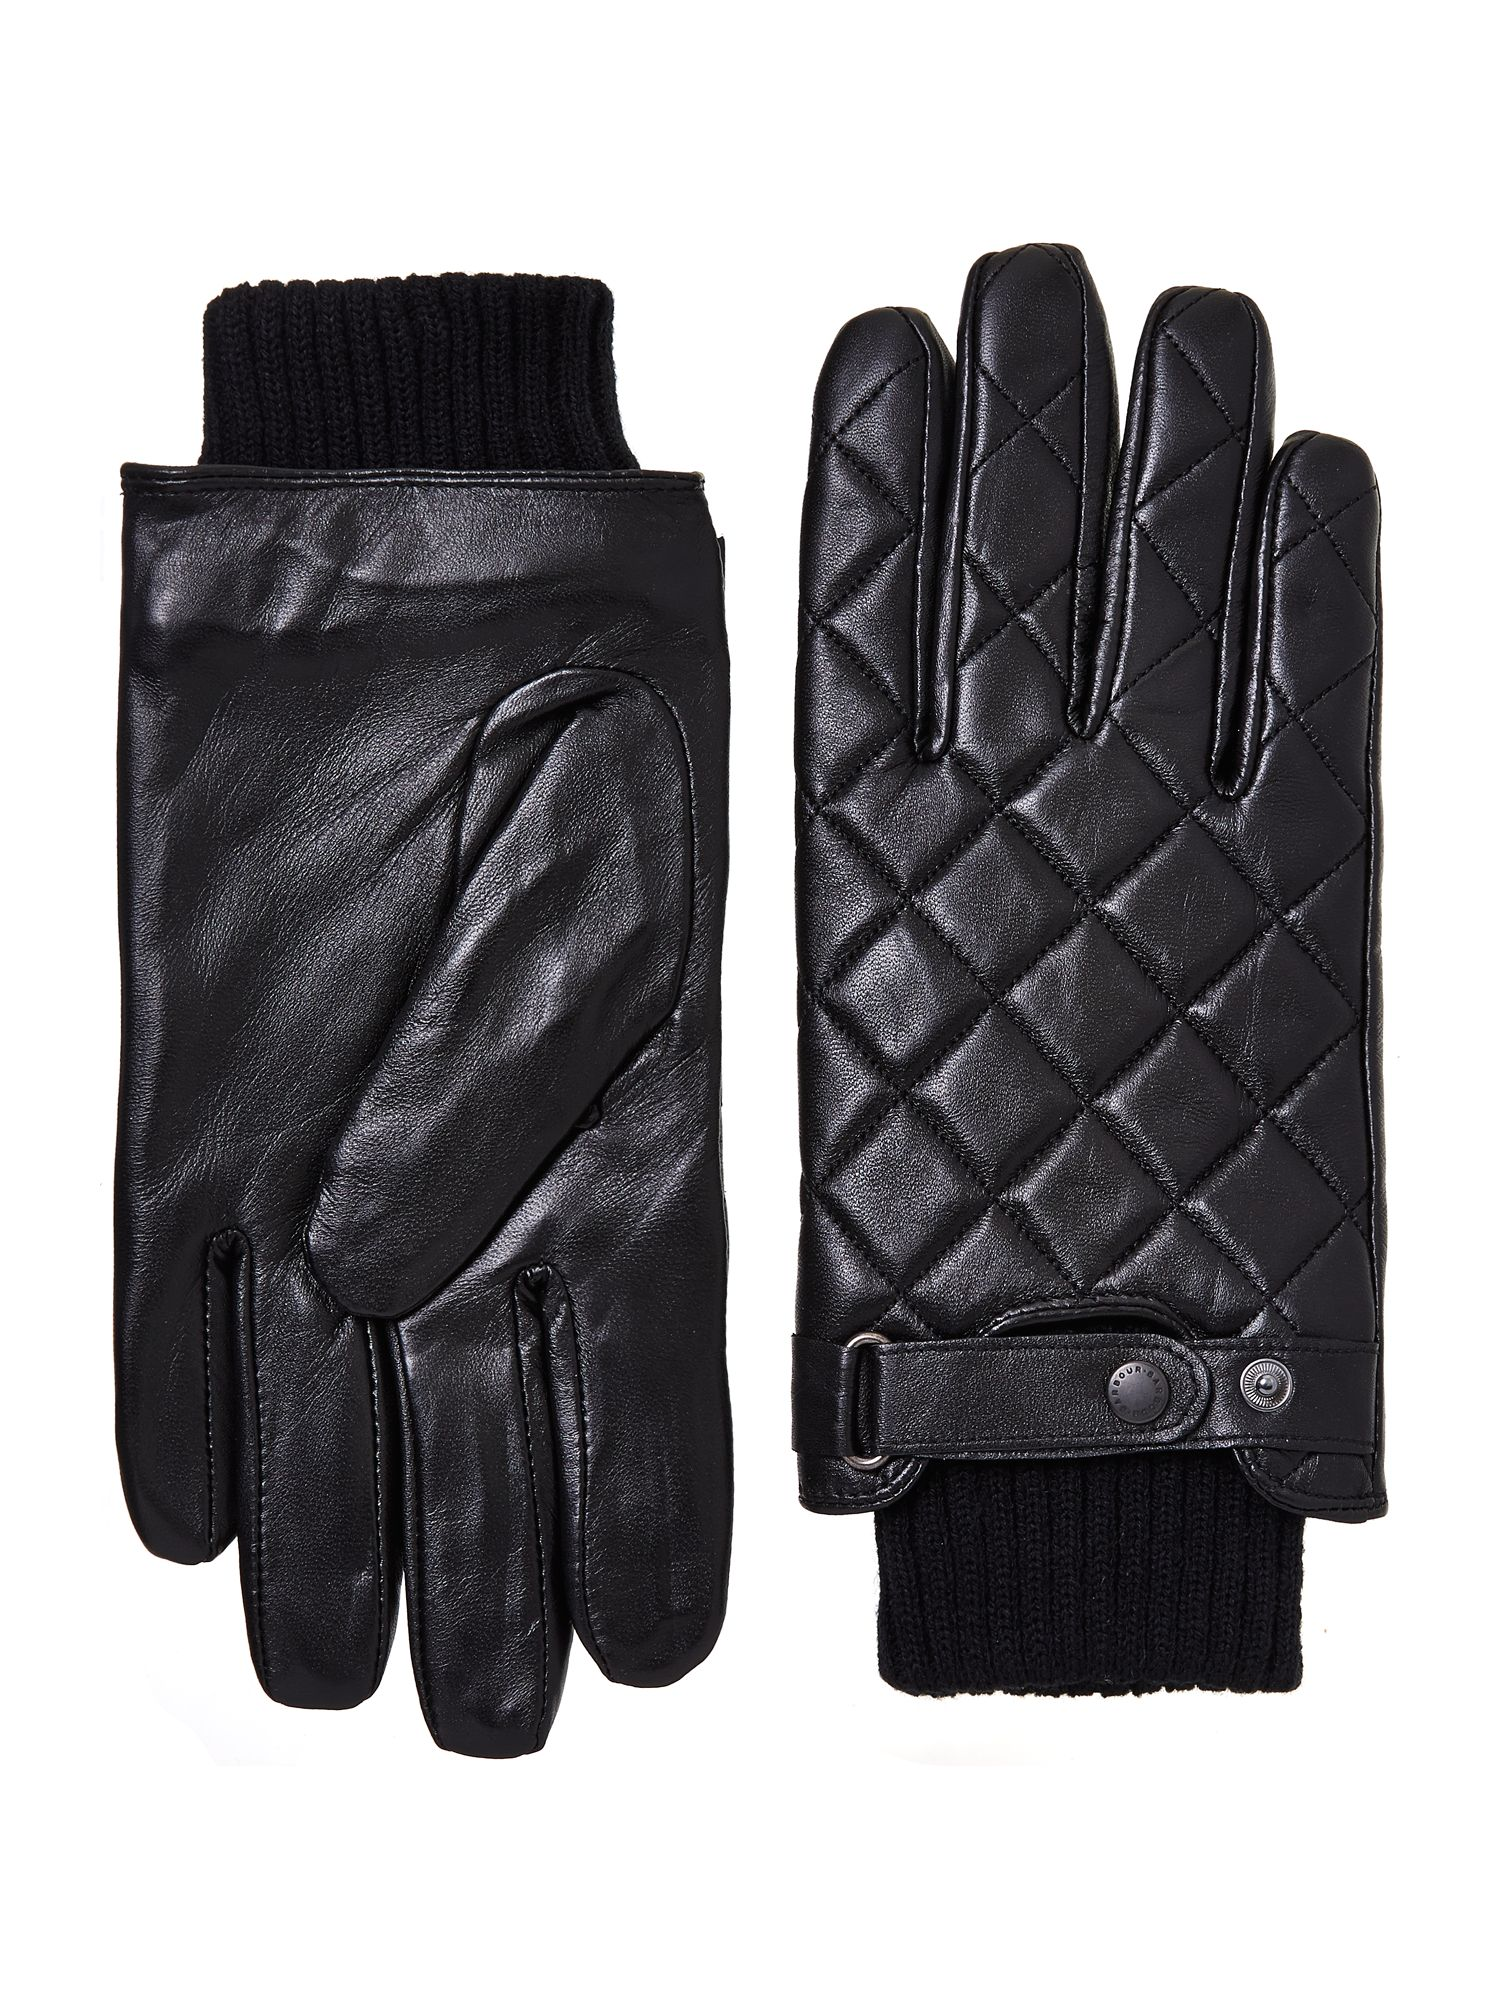 Quilted Leather Gloves : leather quilted gloves - Adamdwight.com